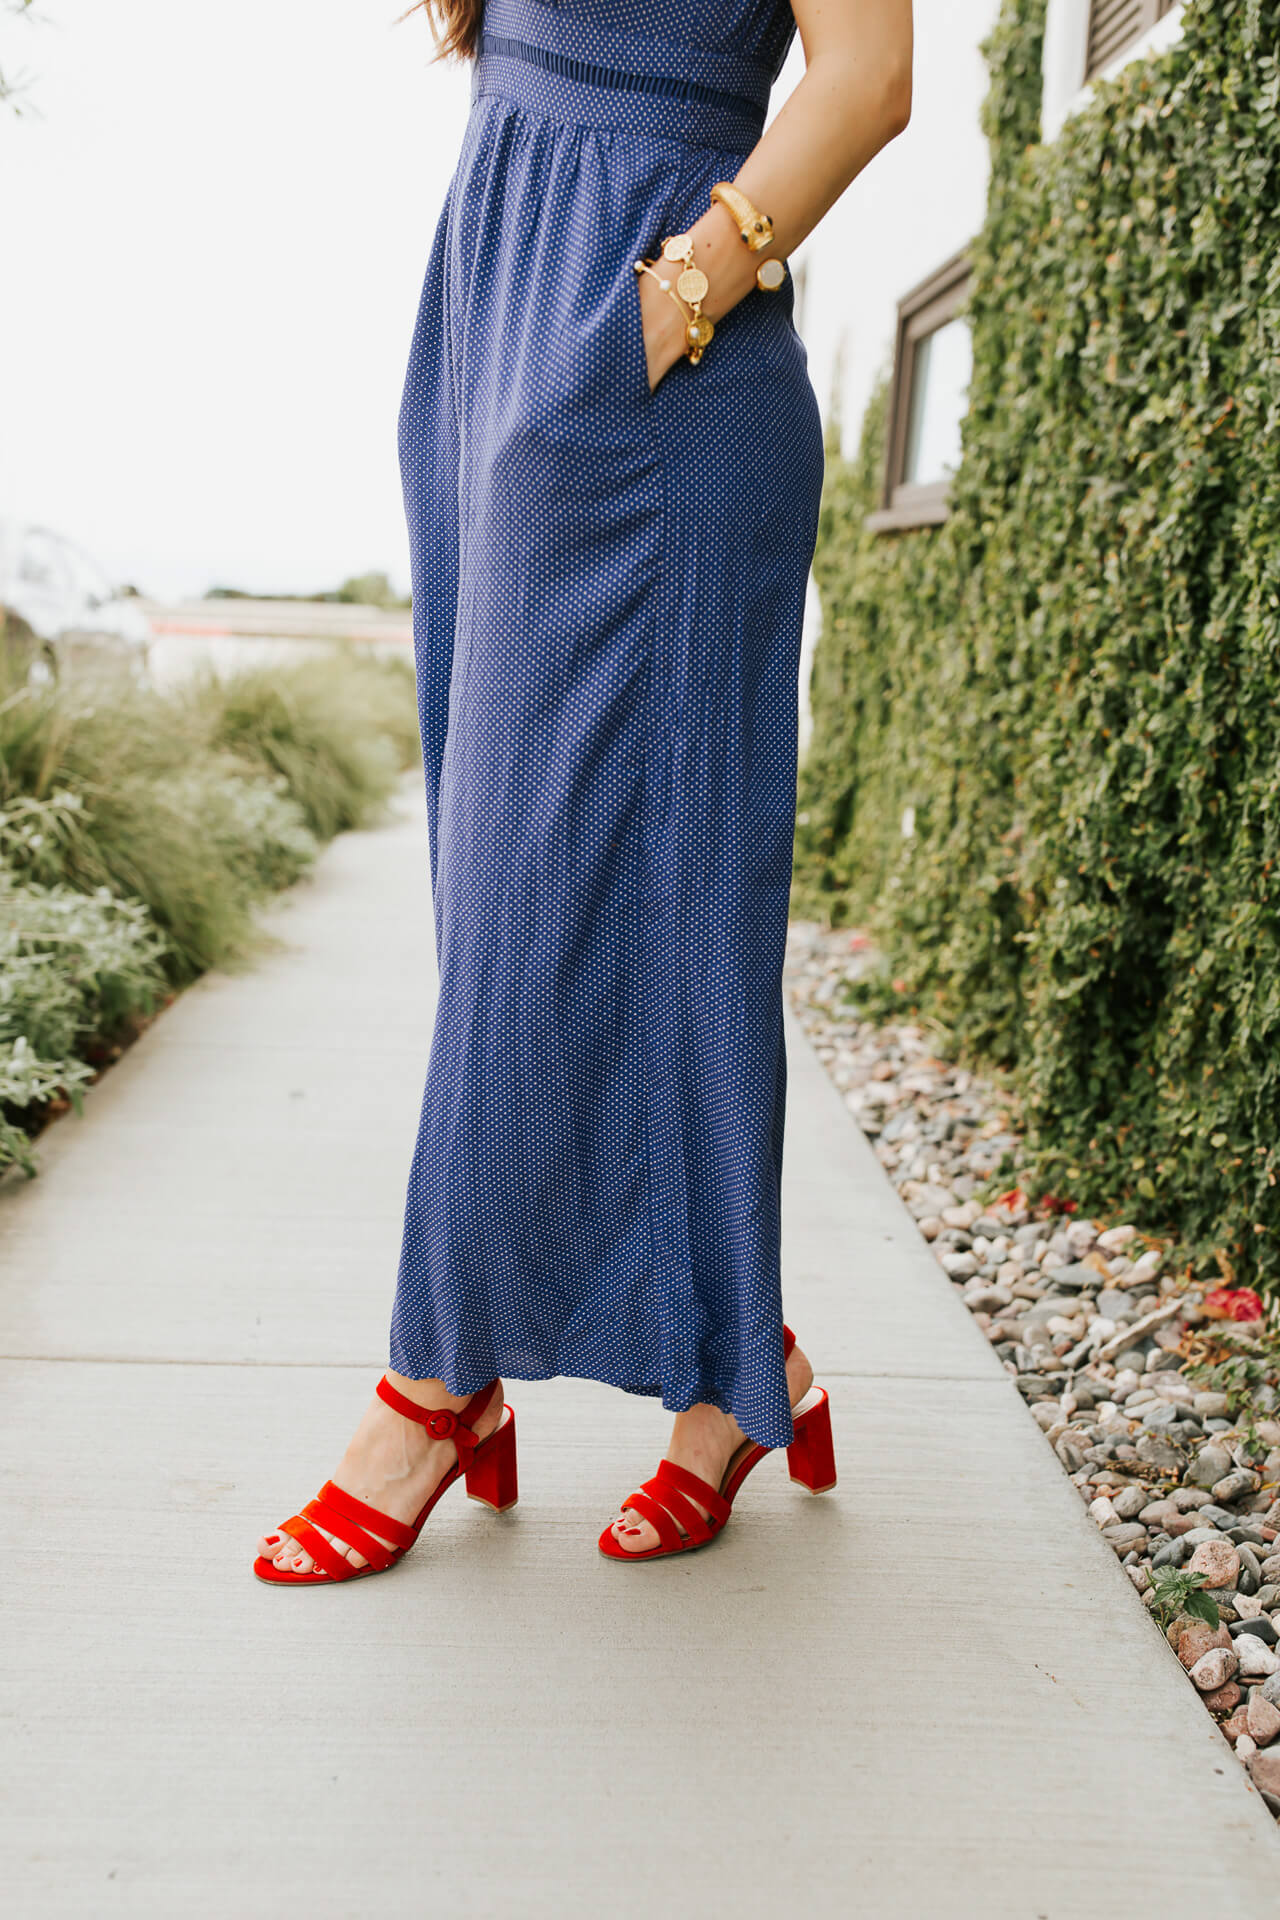 How to style a jumpsuit for sumer.   M Loves M @marmar